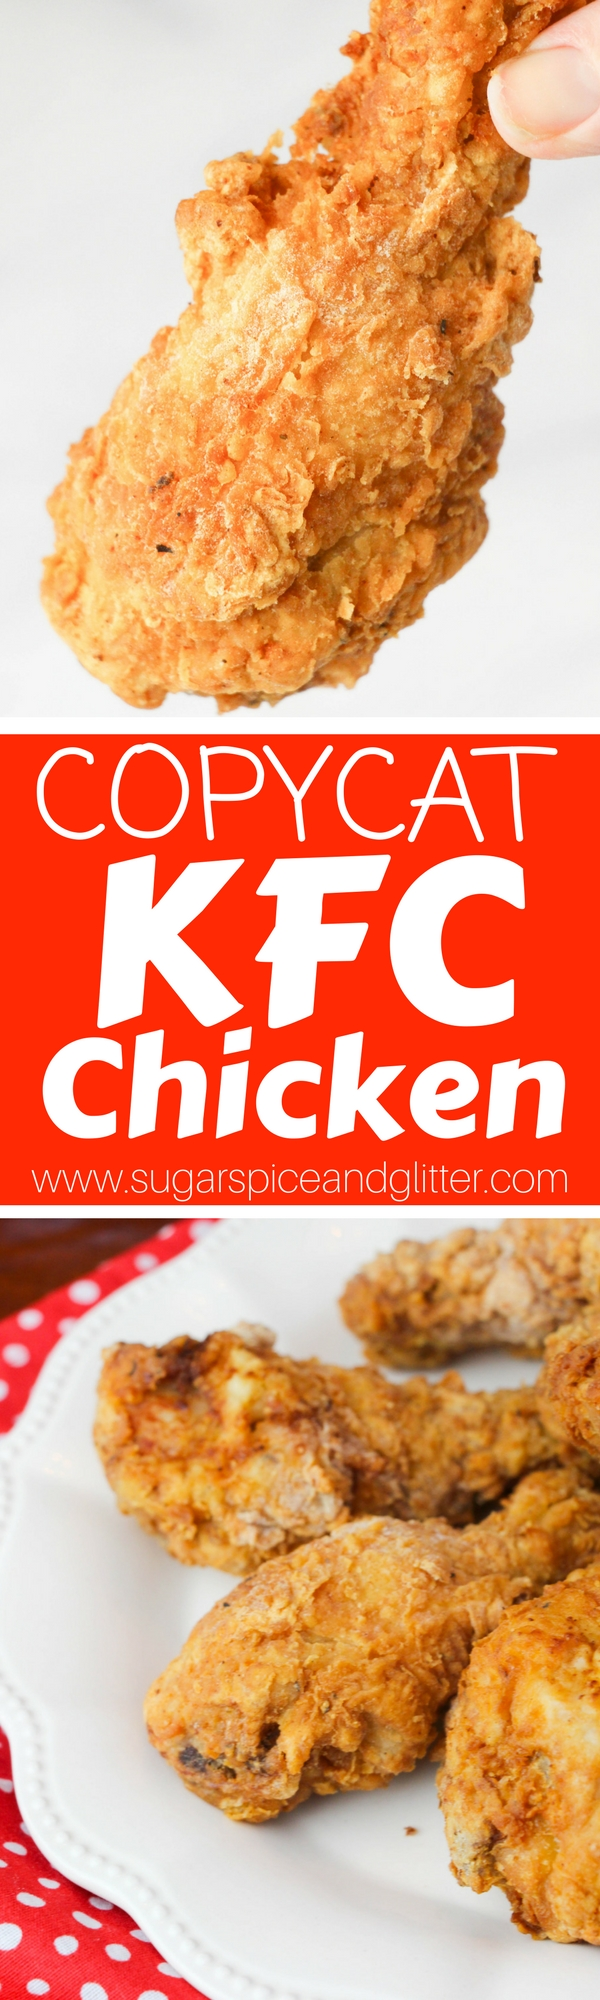 How to make crispy, flavorful Copycat KFC Chicken at home! This recipe is super simple and such a hit at potlucks, or just make it for a special family meal